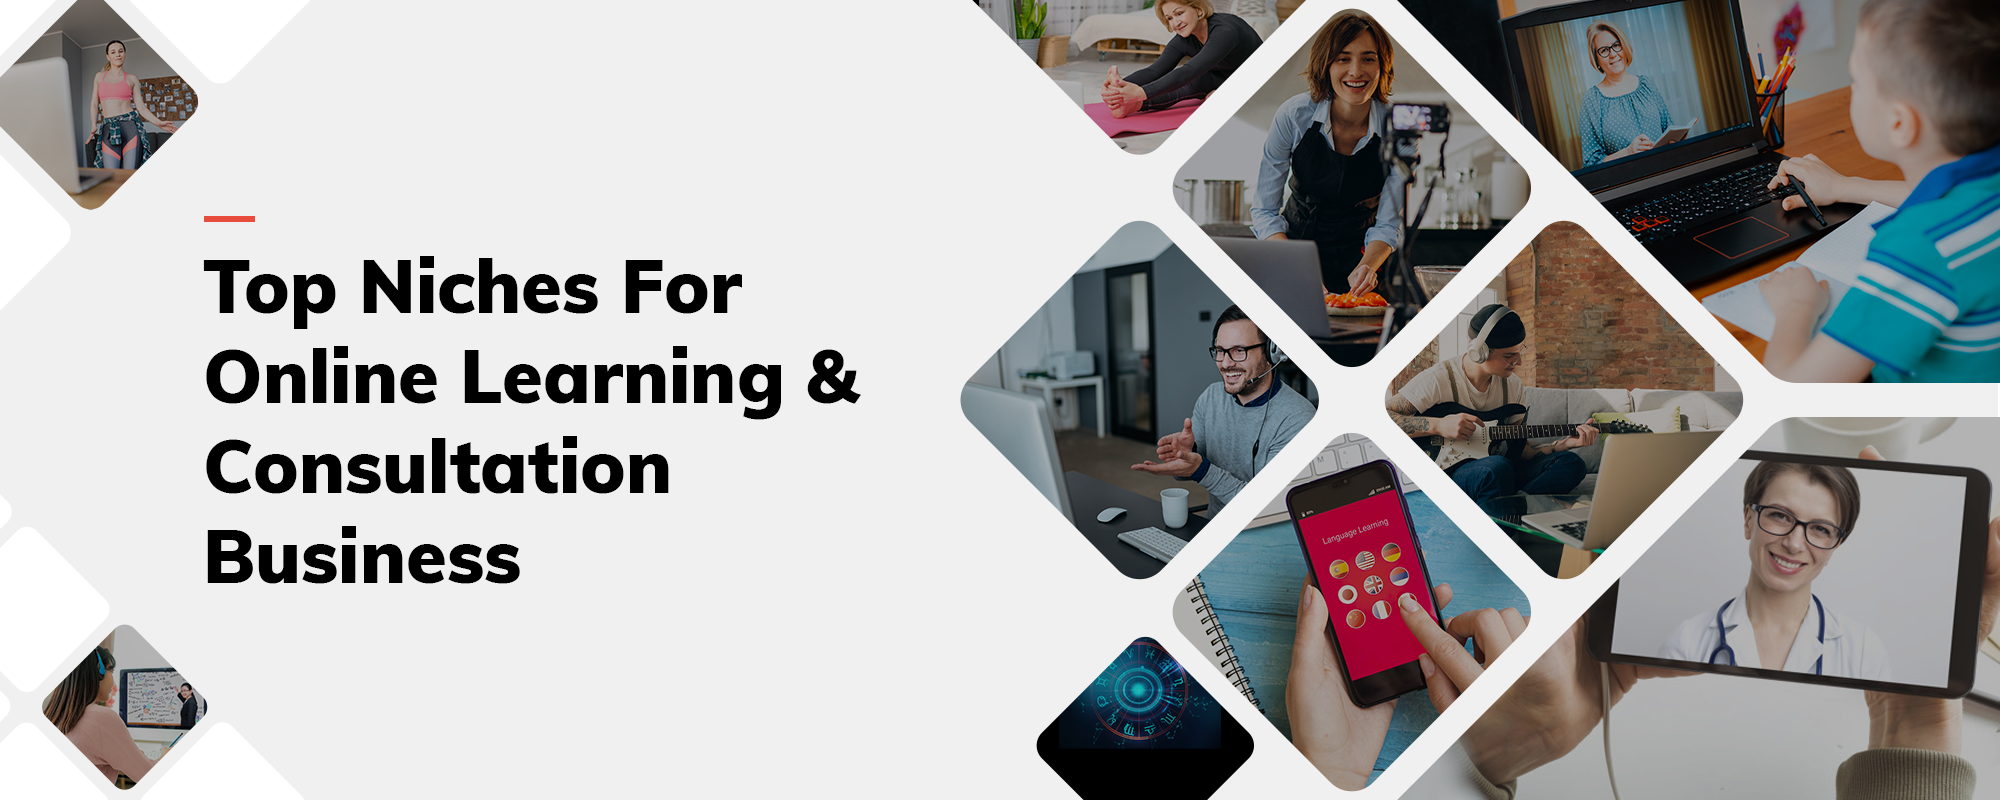 Top 8 Most Profitable Niches for Online learning & Consultation Business during Covid-19 Lockdown